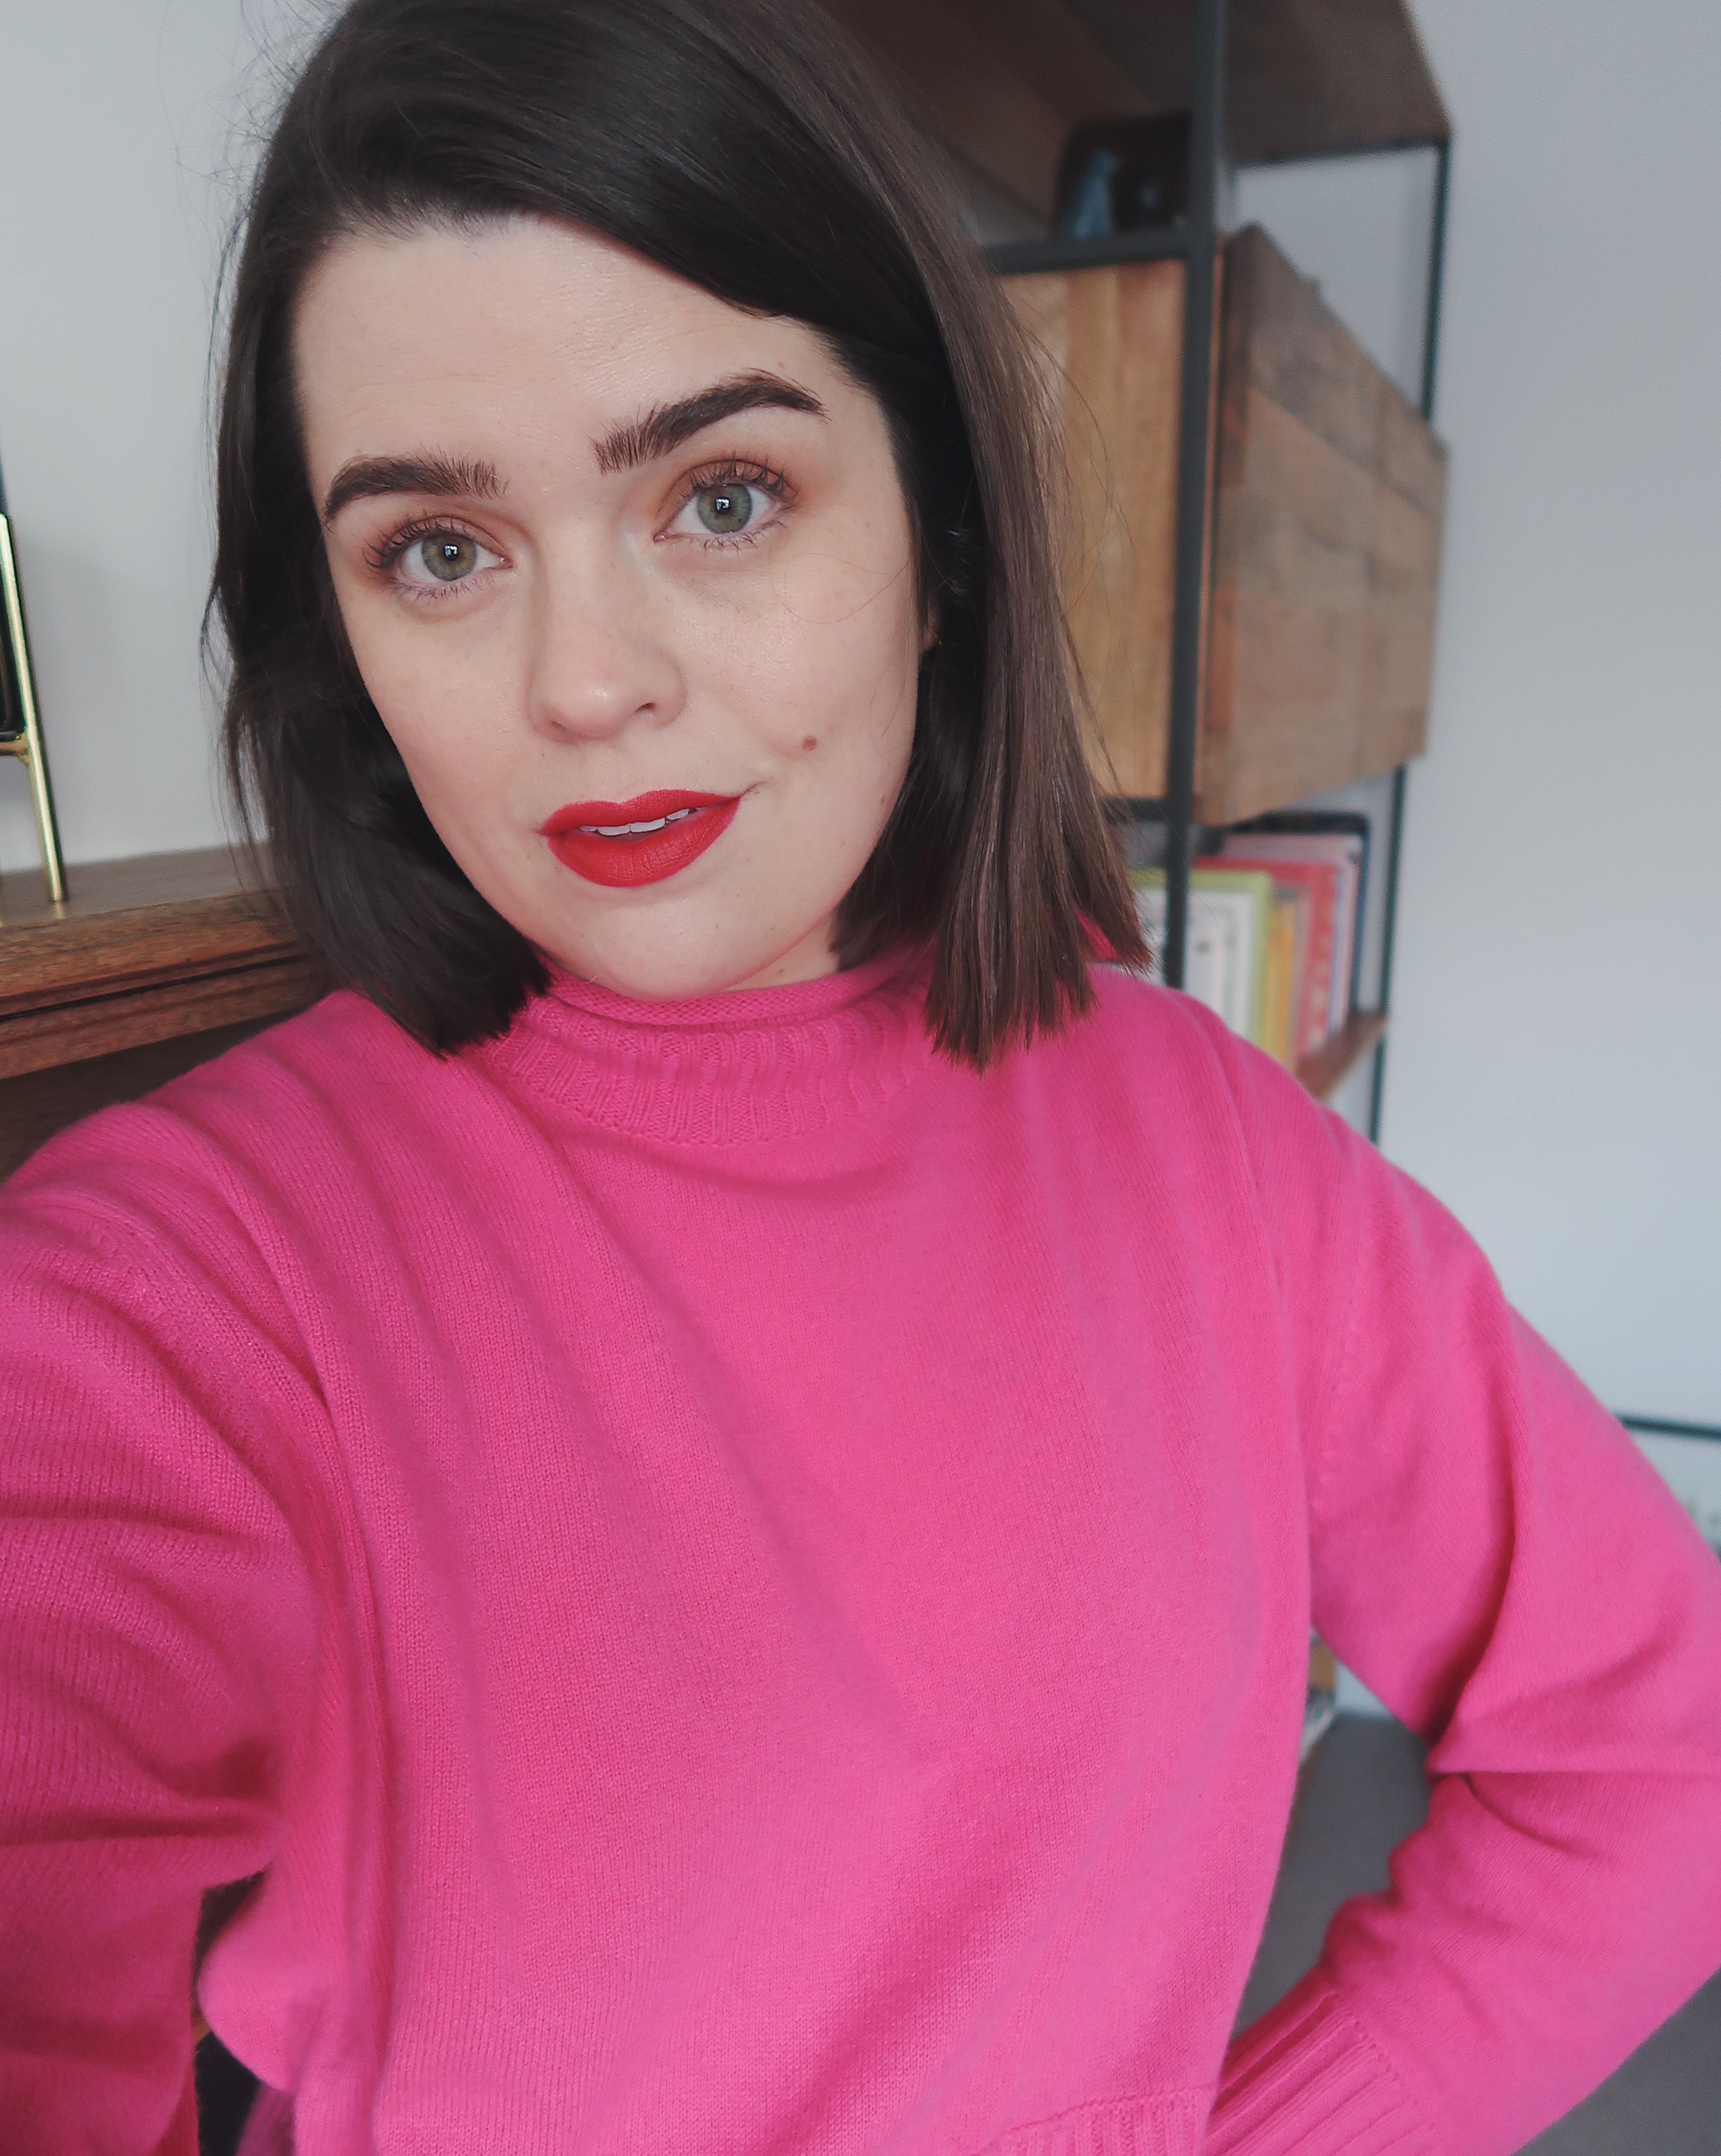 Pin By Kristin Firmin On Makeup Pink Jumper Instagram Red Lips